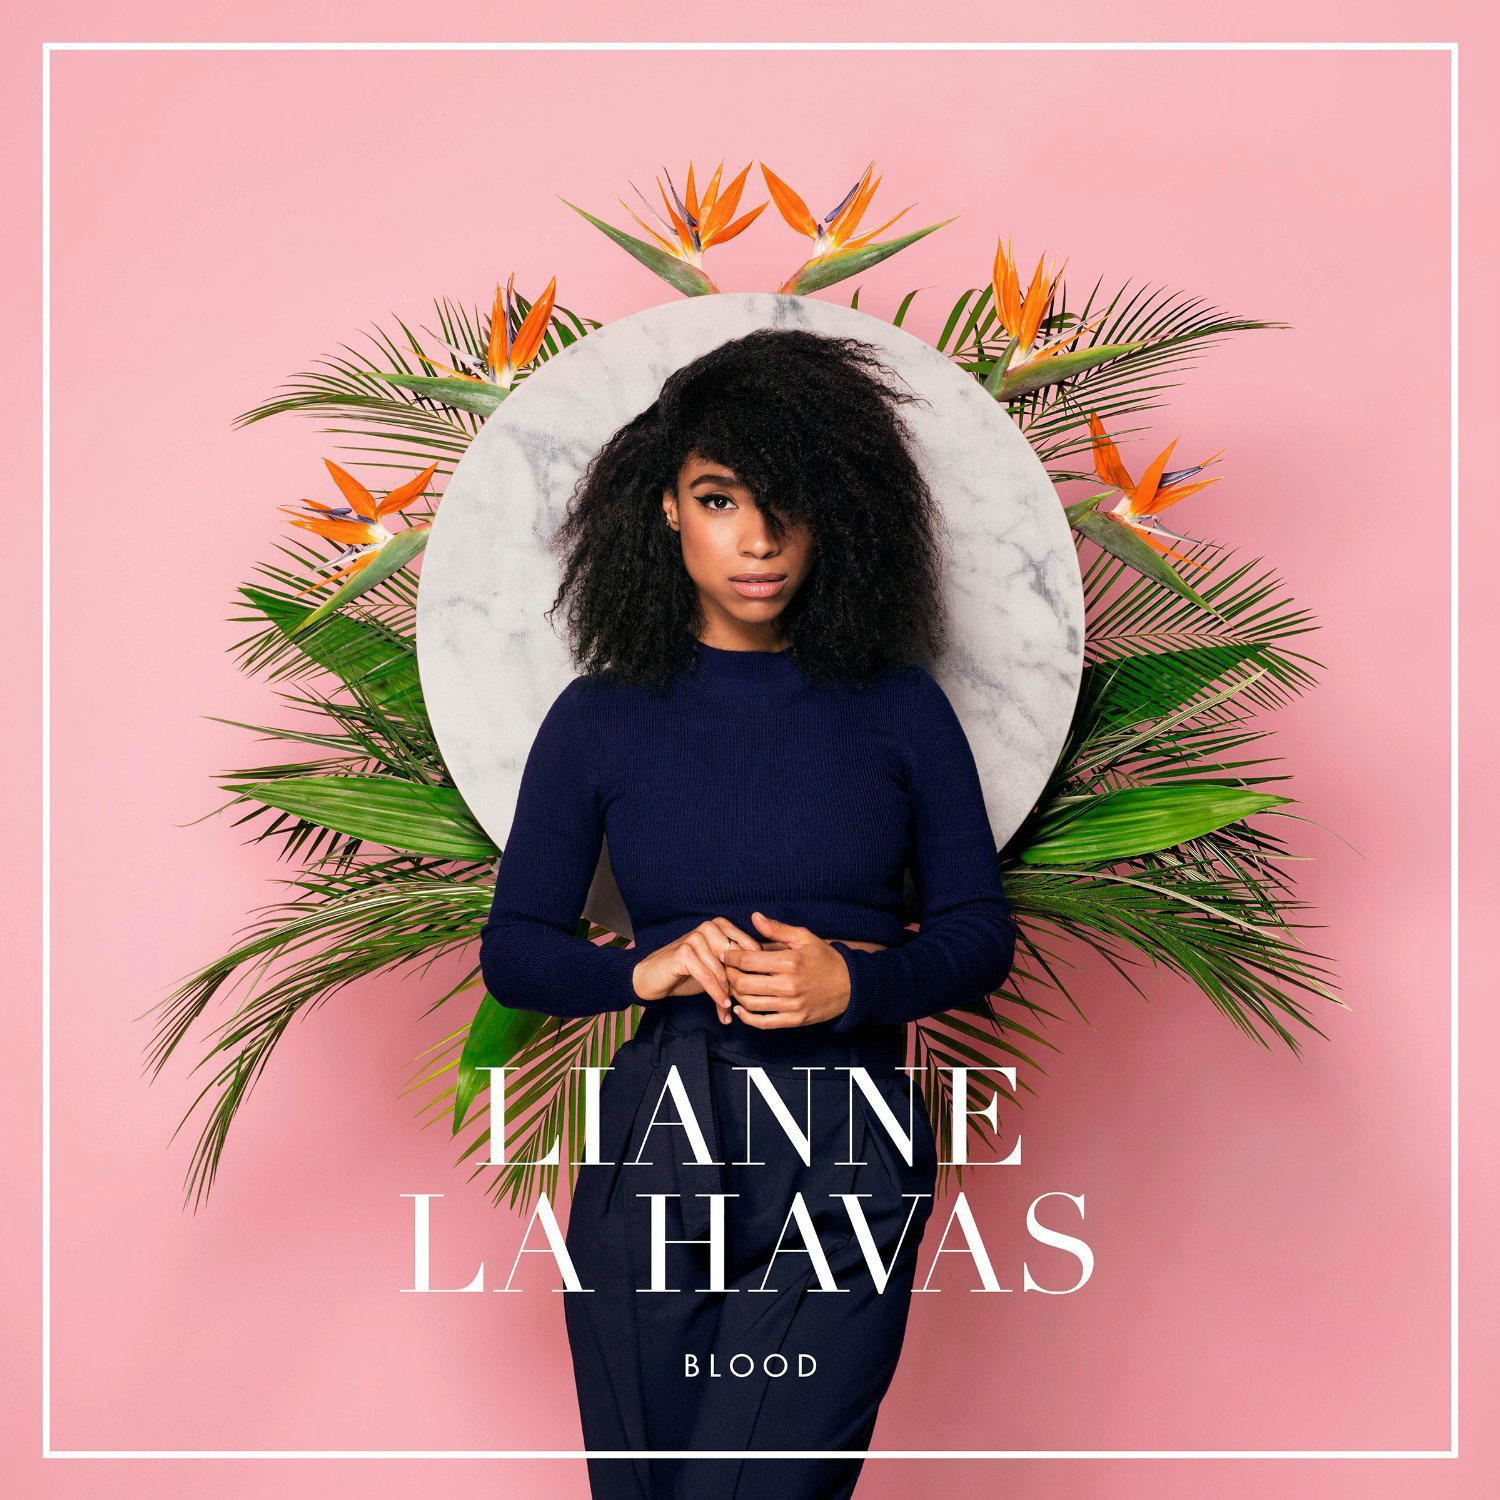 liannelahavas blood cover